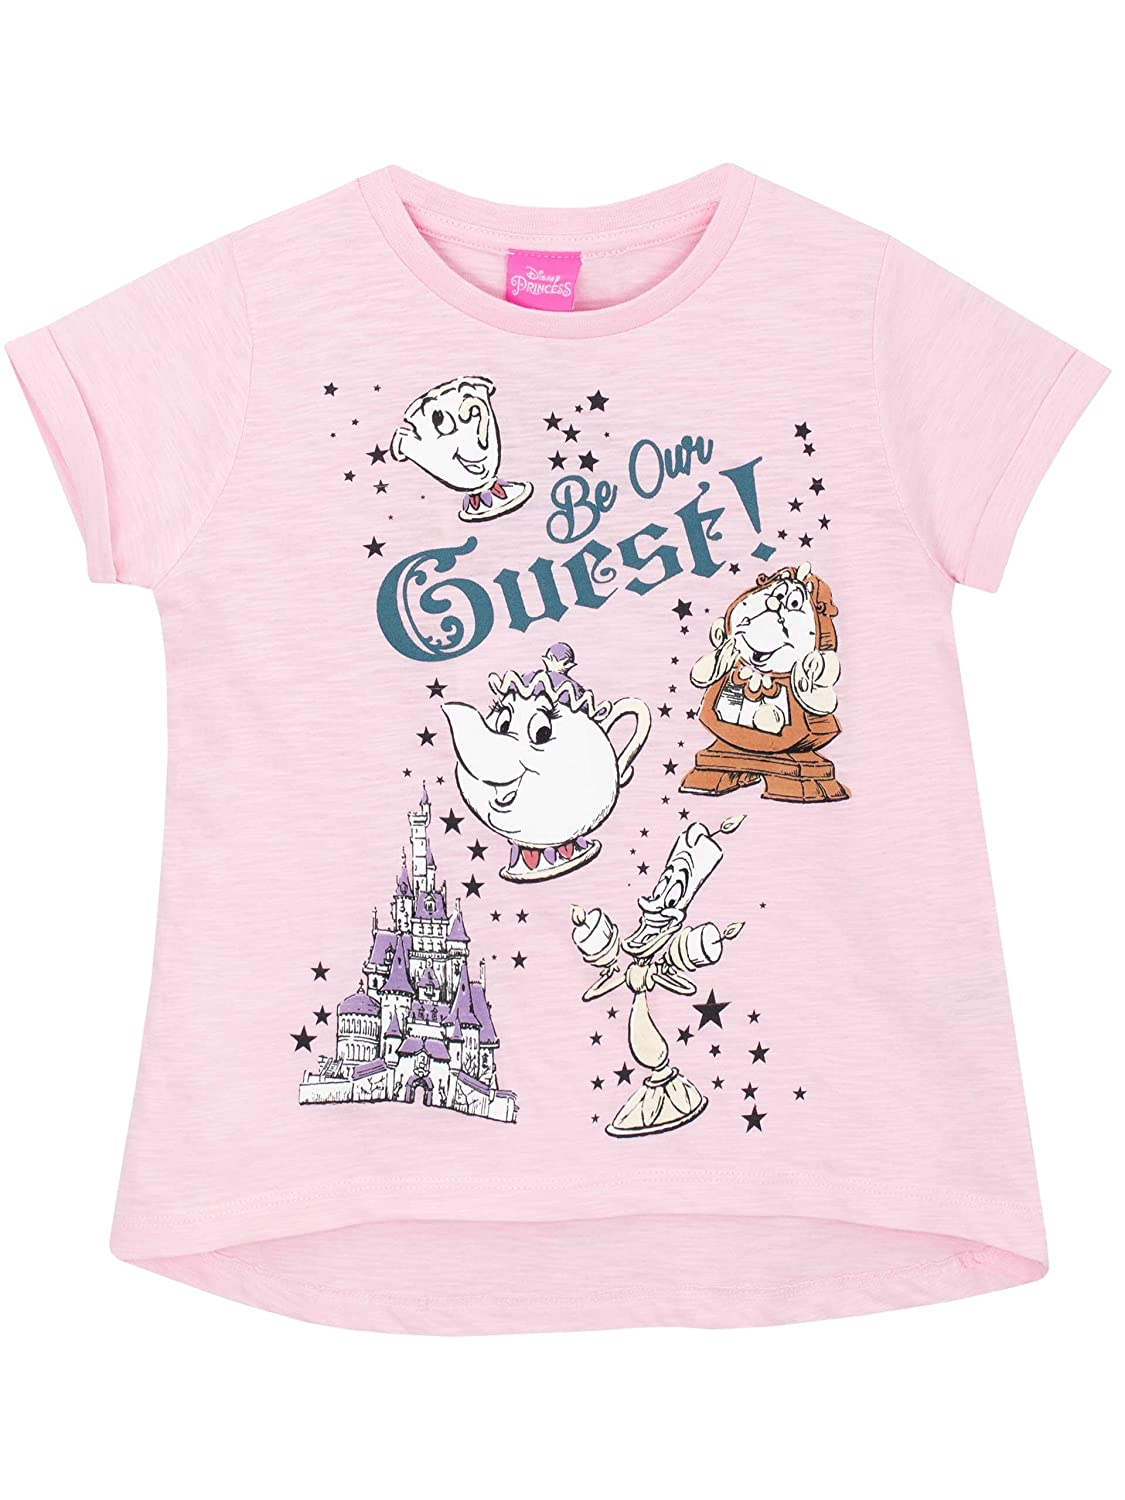 Disney Beauty & the Beast Girls Beauty and the Beast T-Shirt Ages 5 to 12 Years